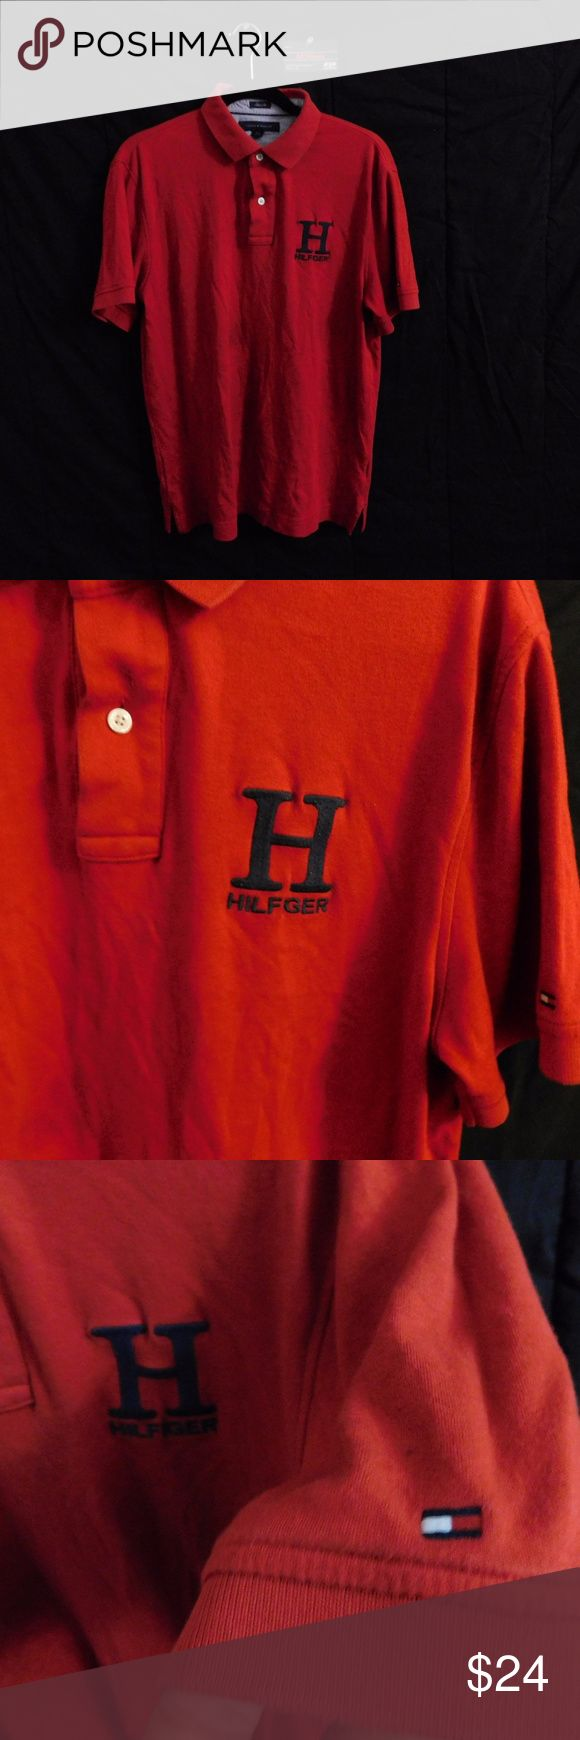 VTG Tommy Hilfiger Polo Shirt Red LARGE USED Vintage Tommy Hilfiger H Logo Spellout Red Polo Short Sleeve Shirt | Mens size LARGE | good condition, minor fading | Slim Fit | flag logo on sleeve  For Discounts Follow Me on Instagram @407vintage !  KEYWORDS/TAGS: ultra boost , Tommy Hilfiger , Polo Sport , Nautica , NMD , supreme , kith , bred , adidas , banned , french blue , stussy , Maestro , vintage , kaws , solefly , trophy room , box logo , gamma blue , retro jordan , steal , foams…